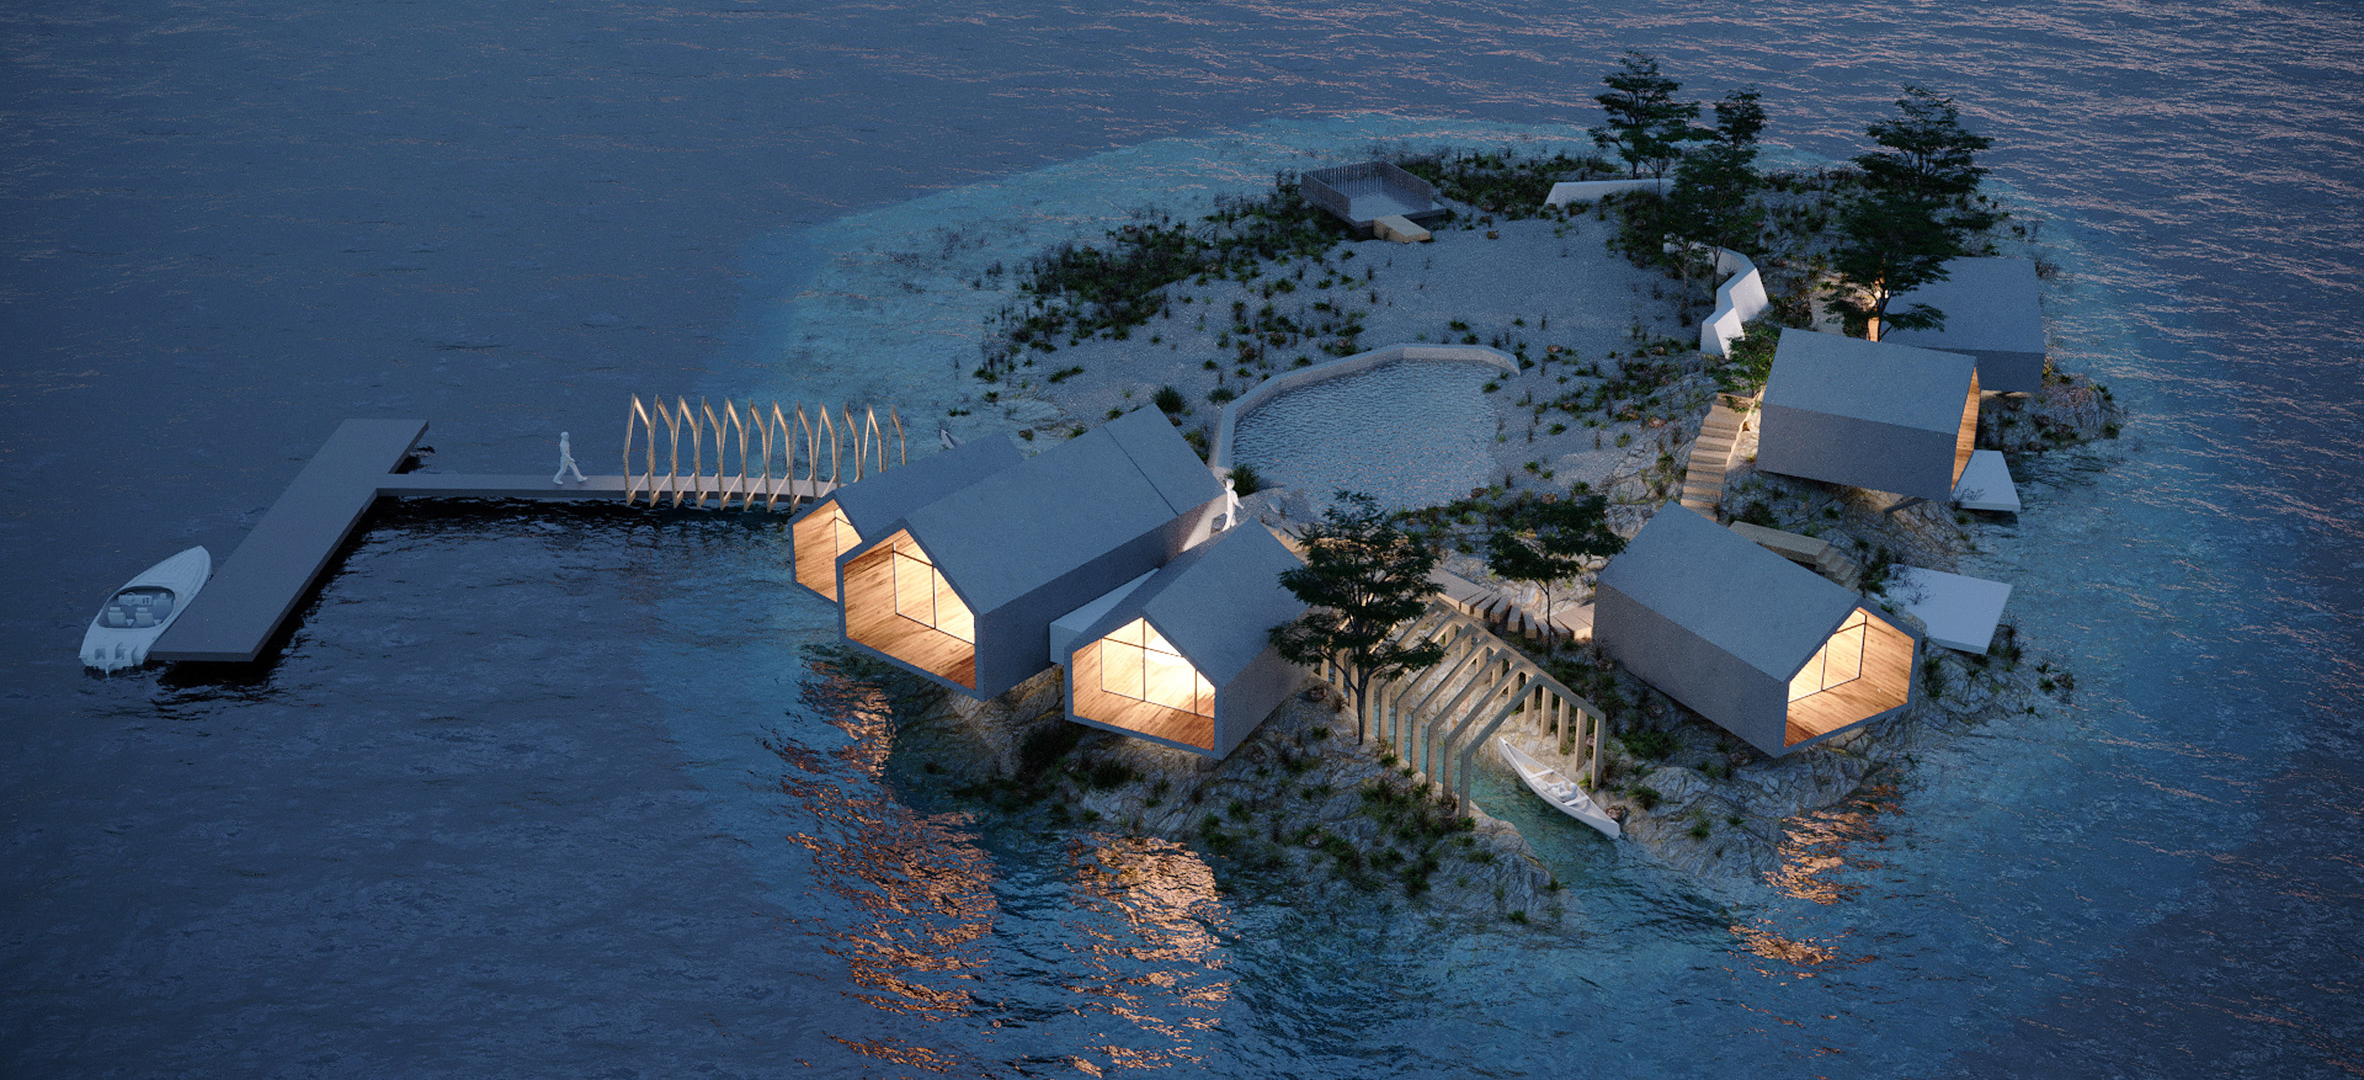 Rat Island private island boutique resort in New York City by Jendretzki Design